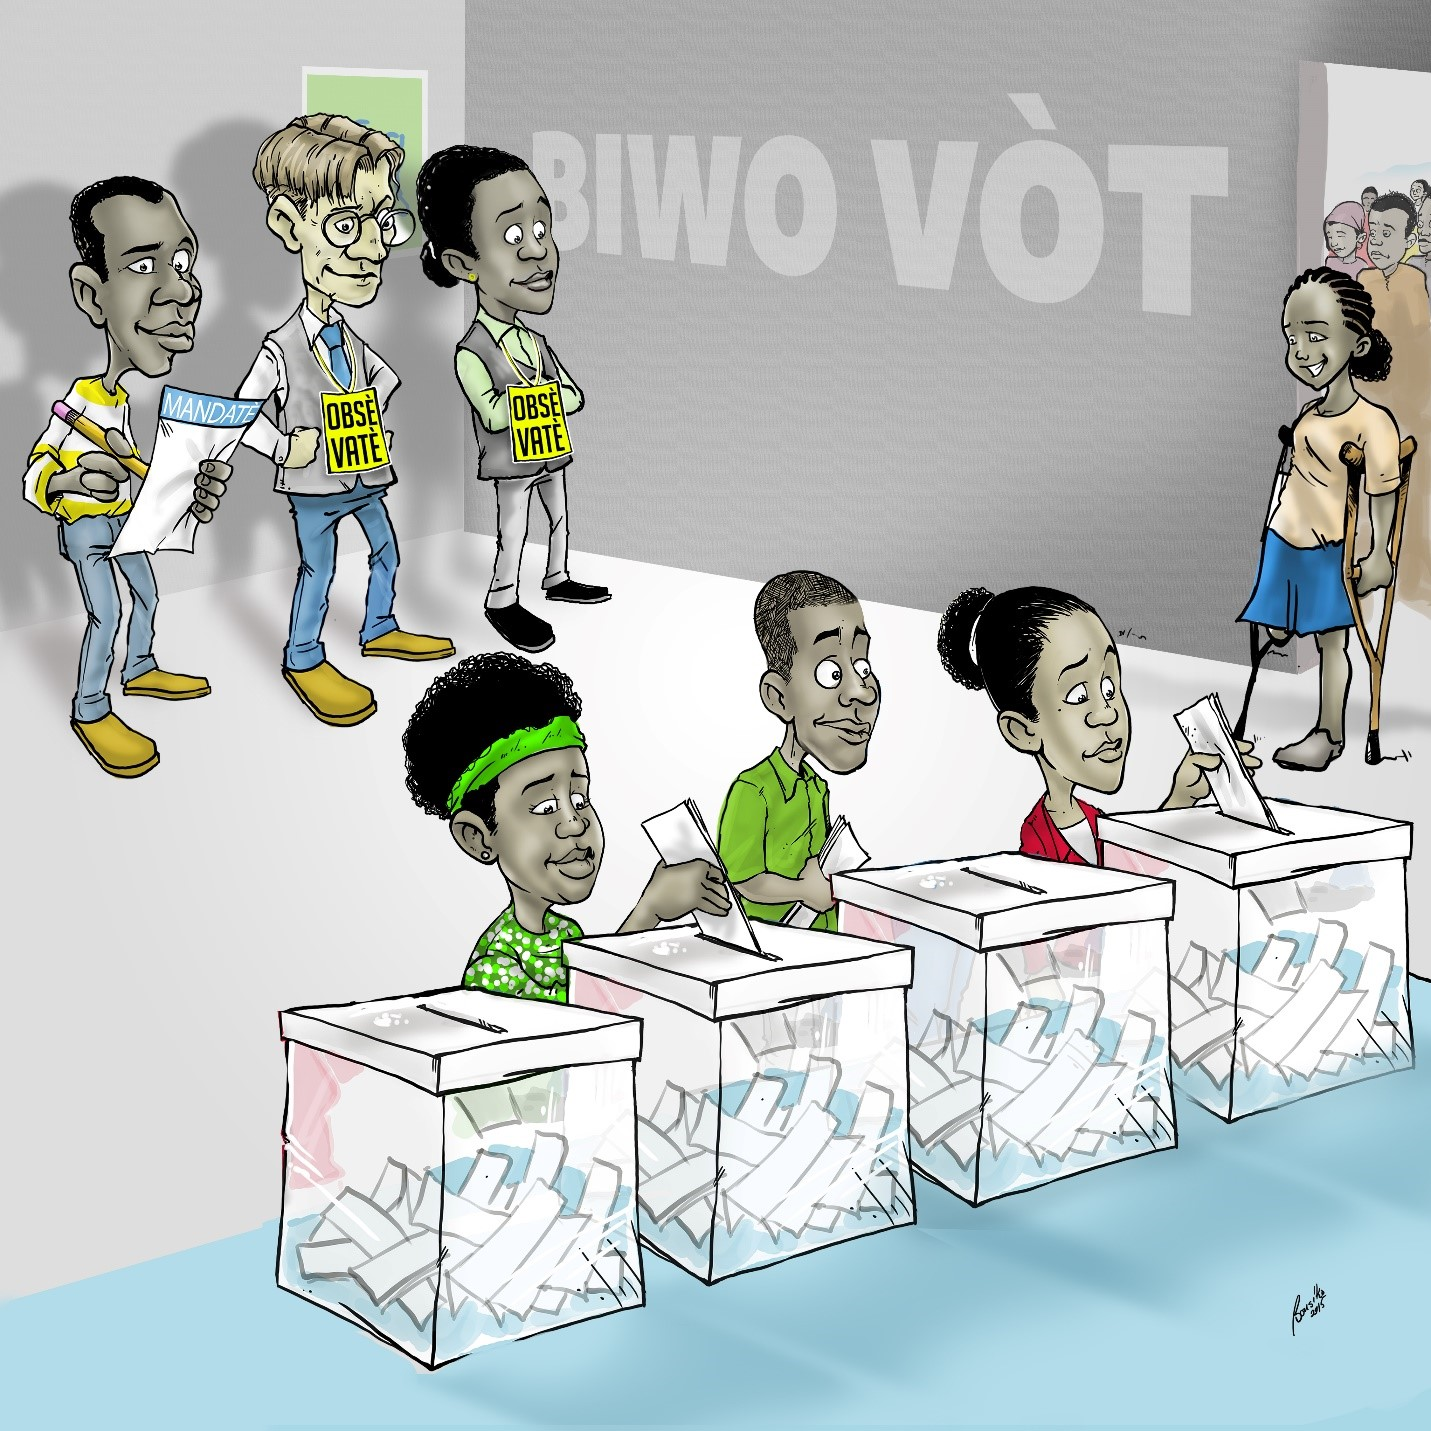 To positively influence the media, IFES released these cartoons to show election observers monitoring voting for elections in Haiti.